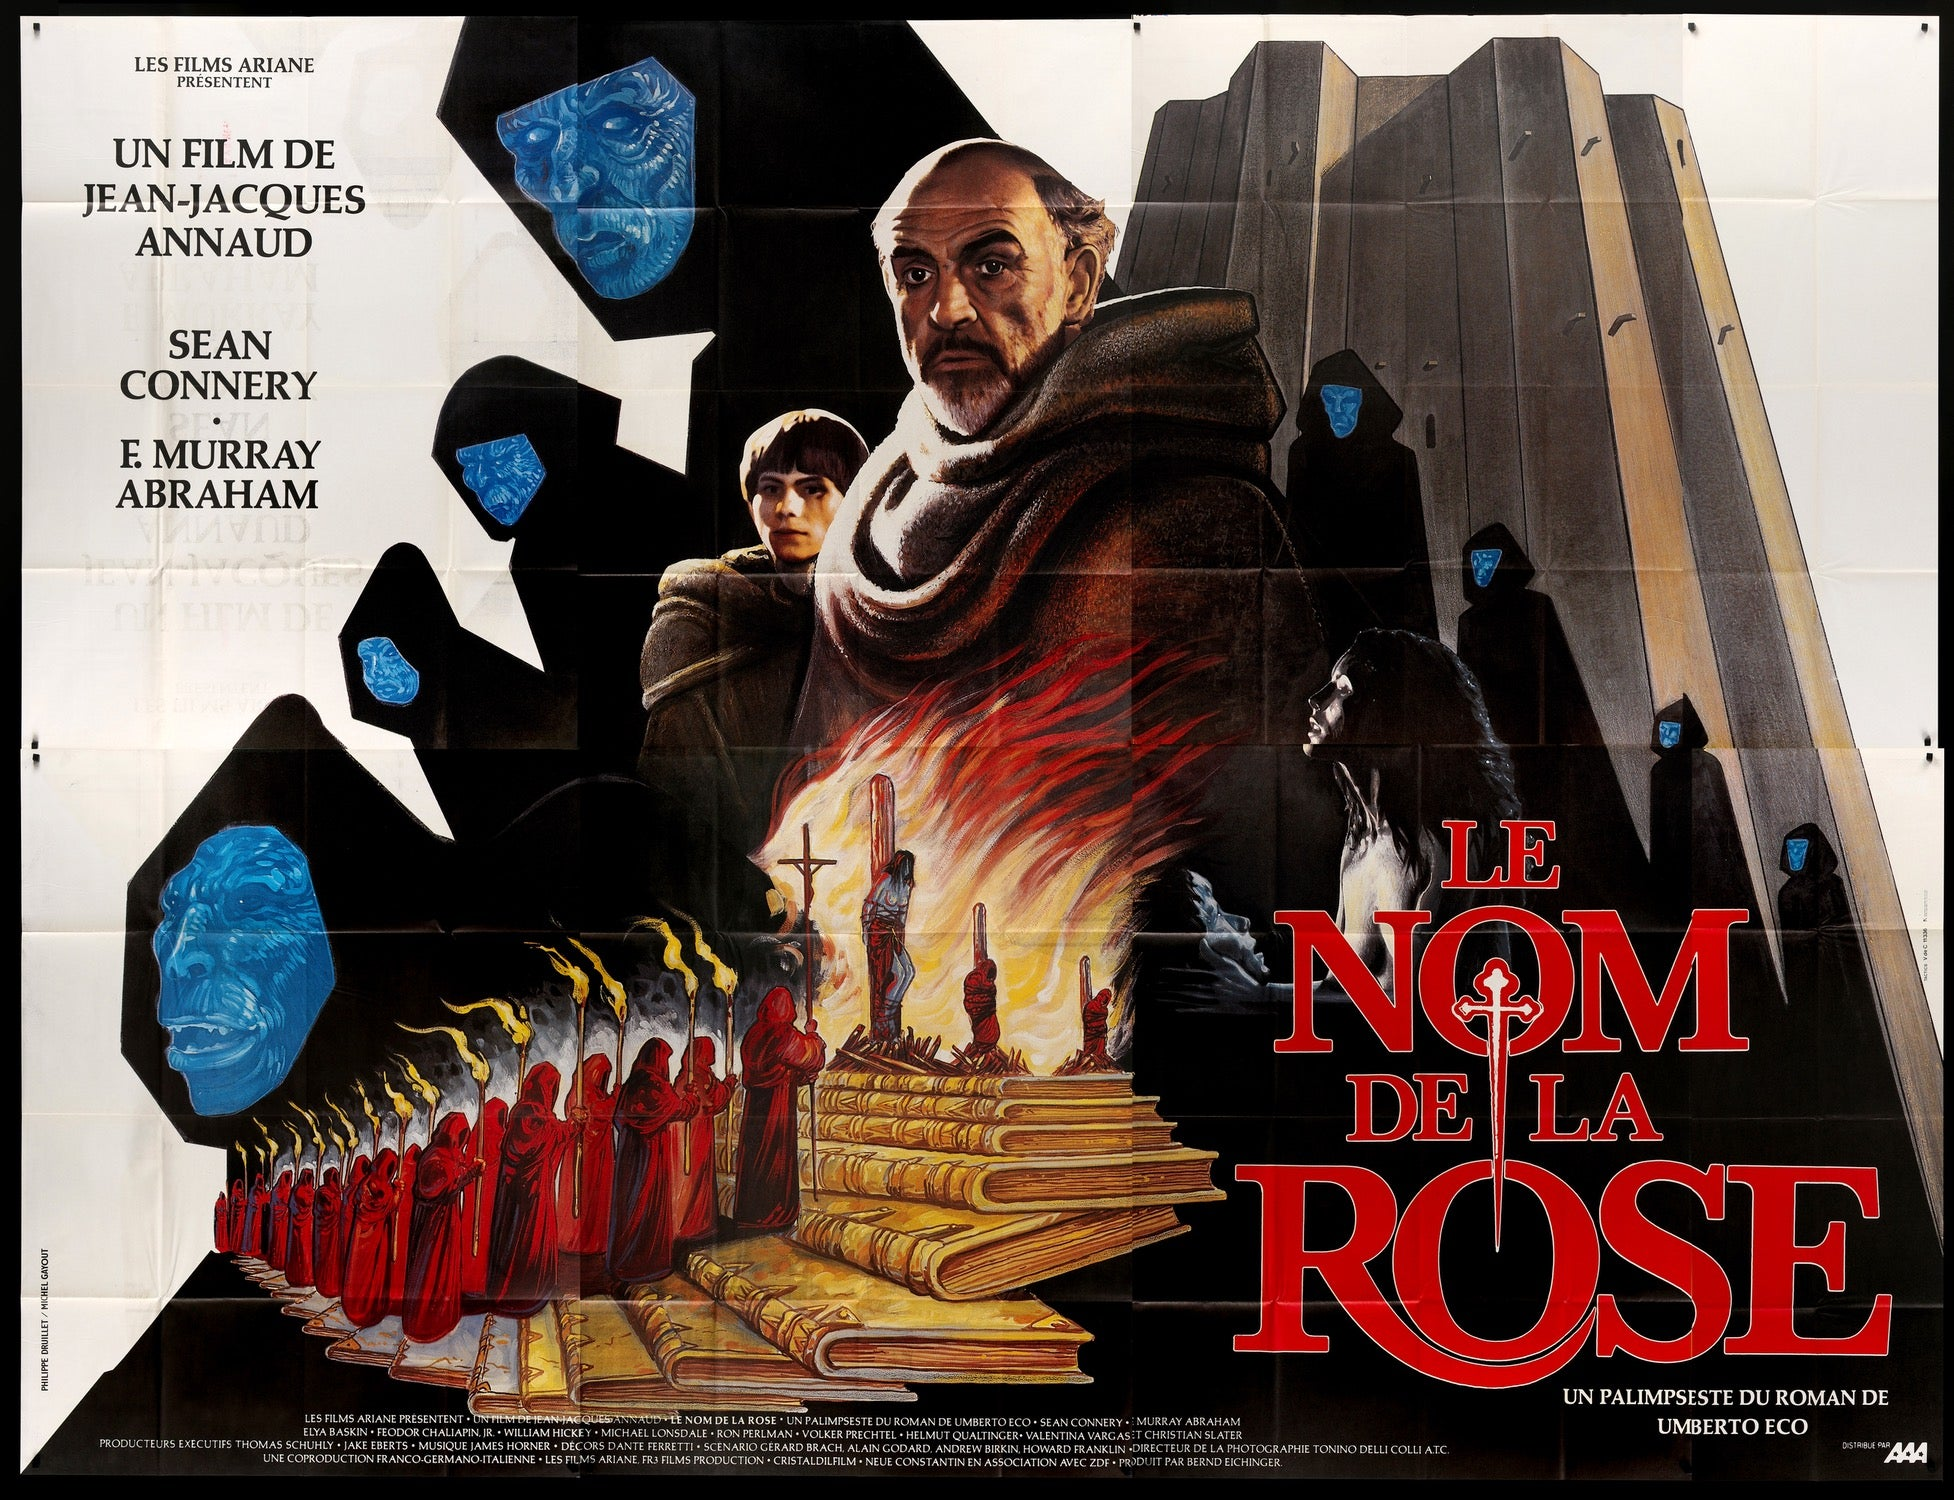 name_of_the_rose_1986_french_8p_original_film_art_2000x.jpg?v=1571512571